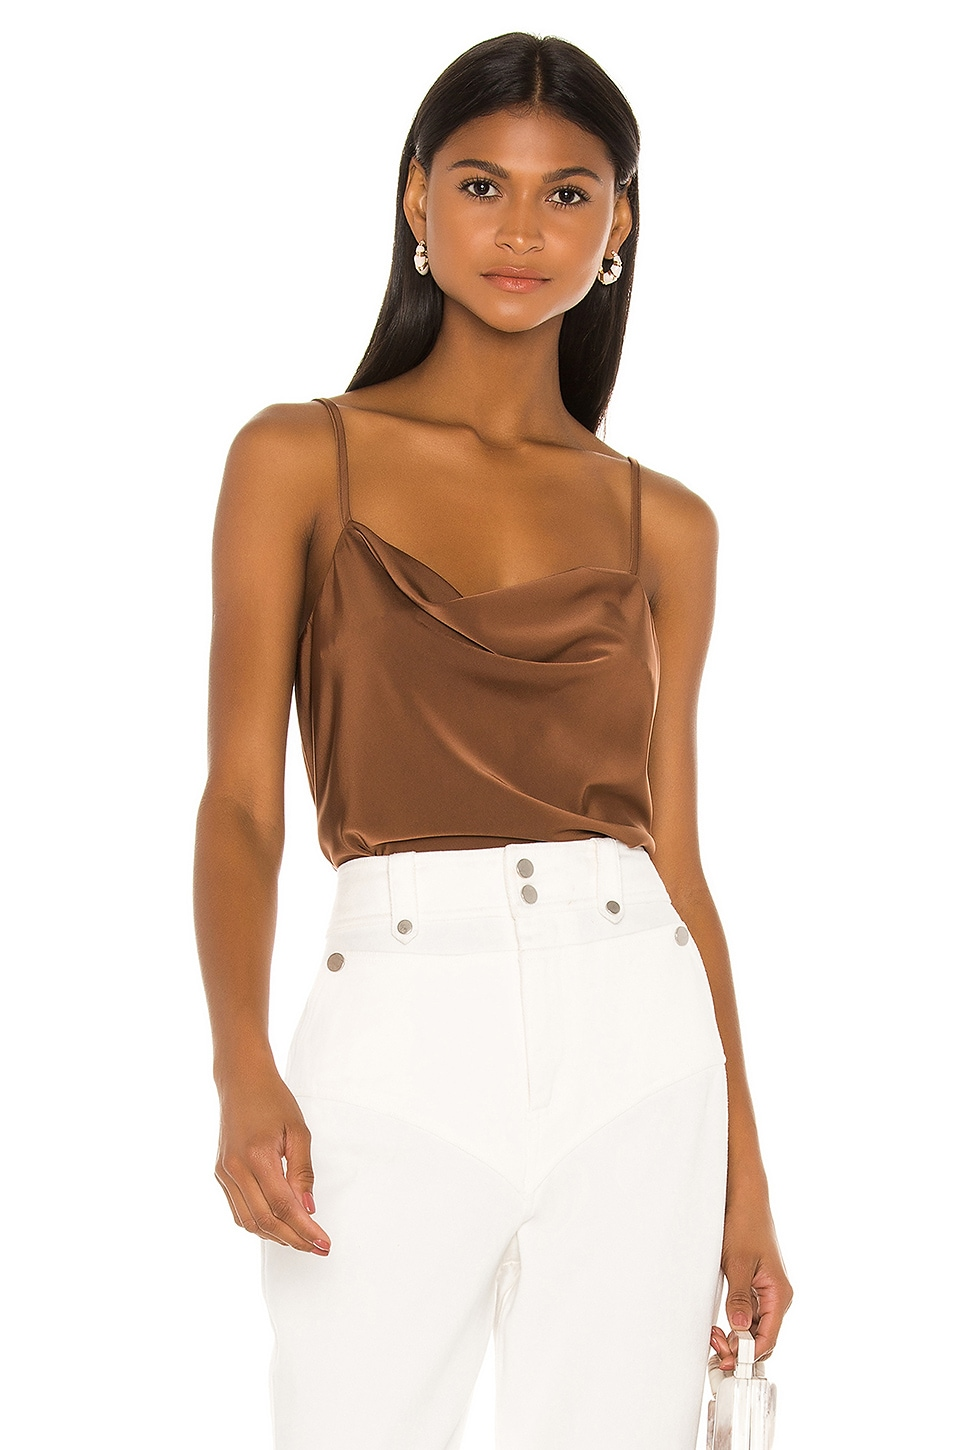 L'Academie Katlyn Top in Brown